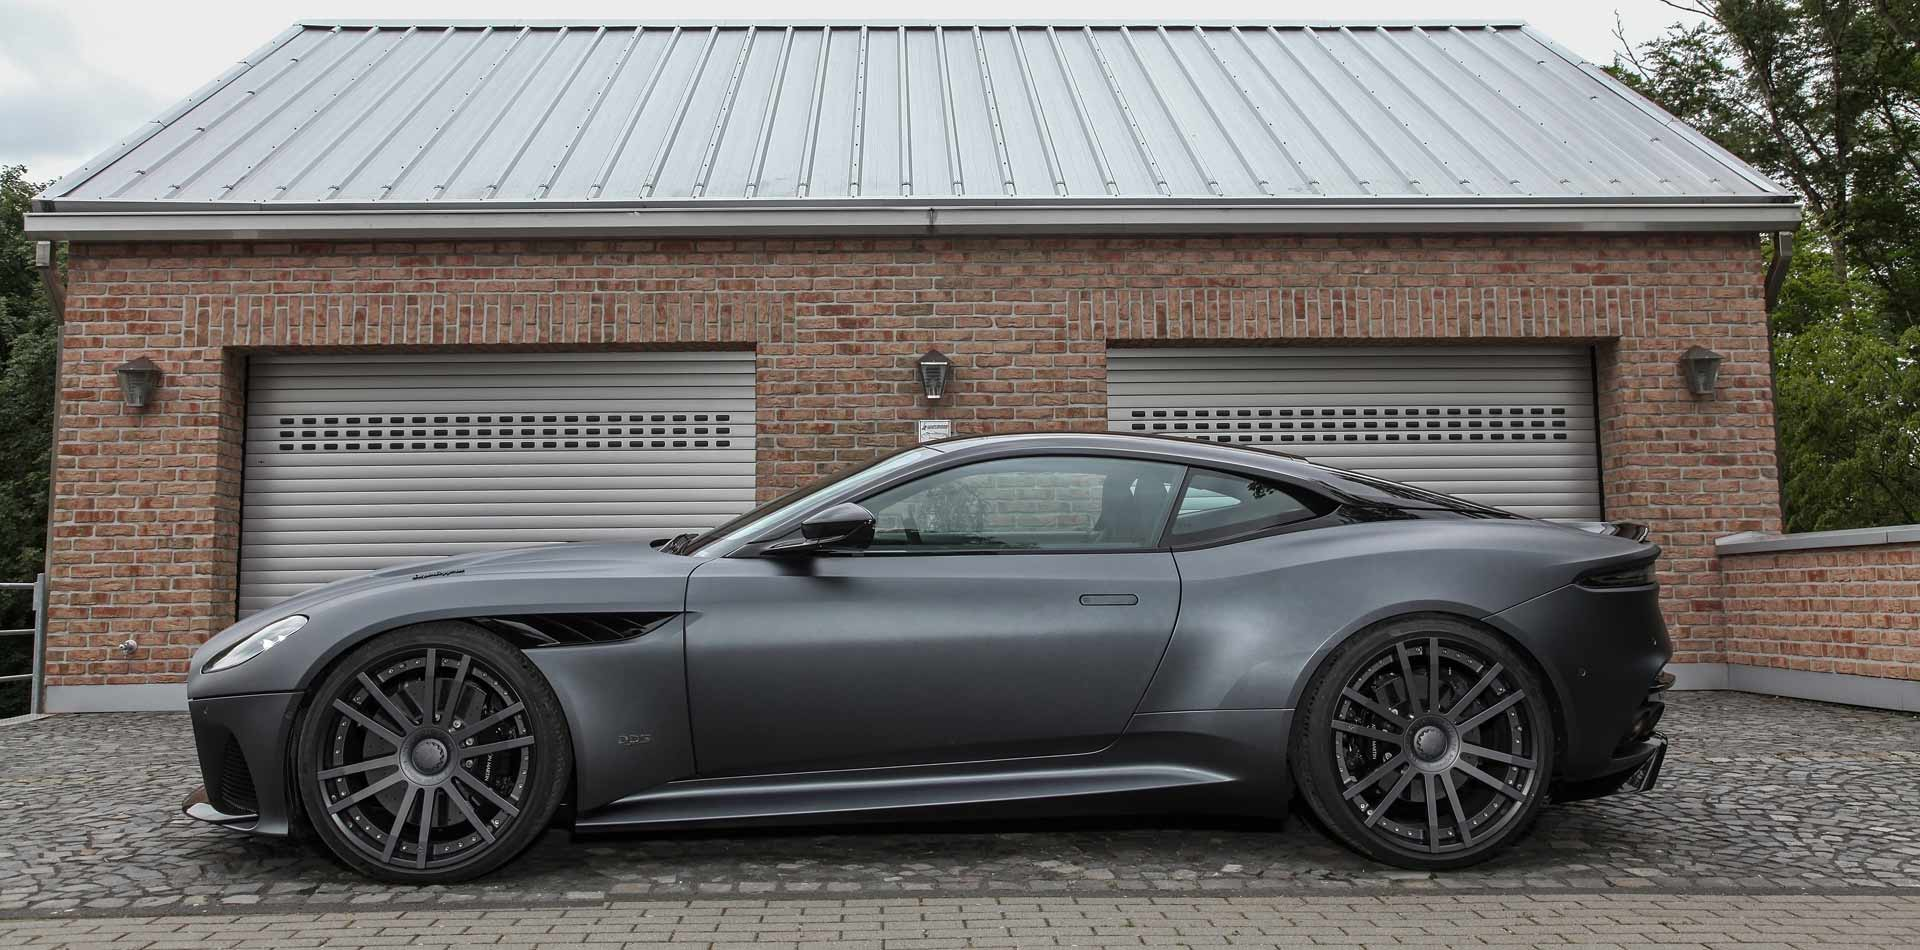 Aston-Martin-DBS-Superleggera-by-Wheelsandmore-2